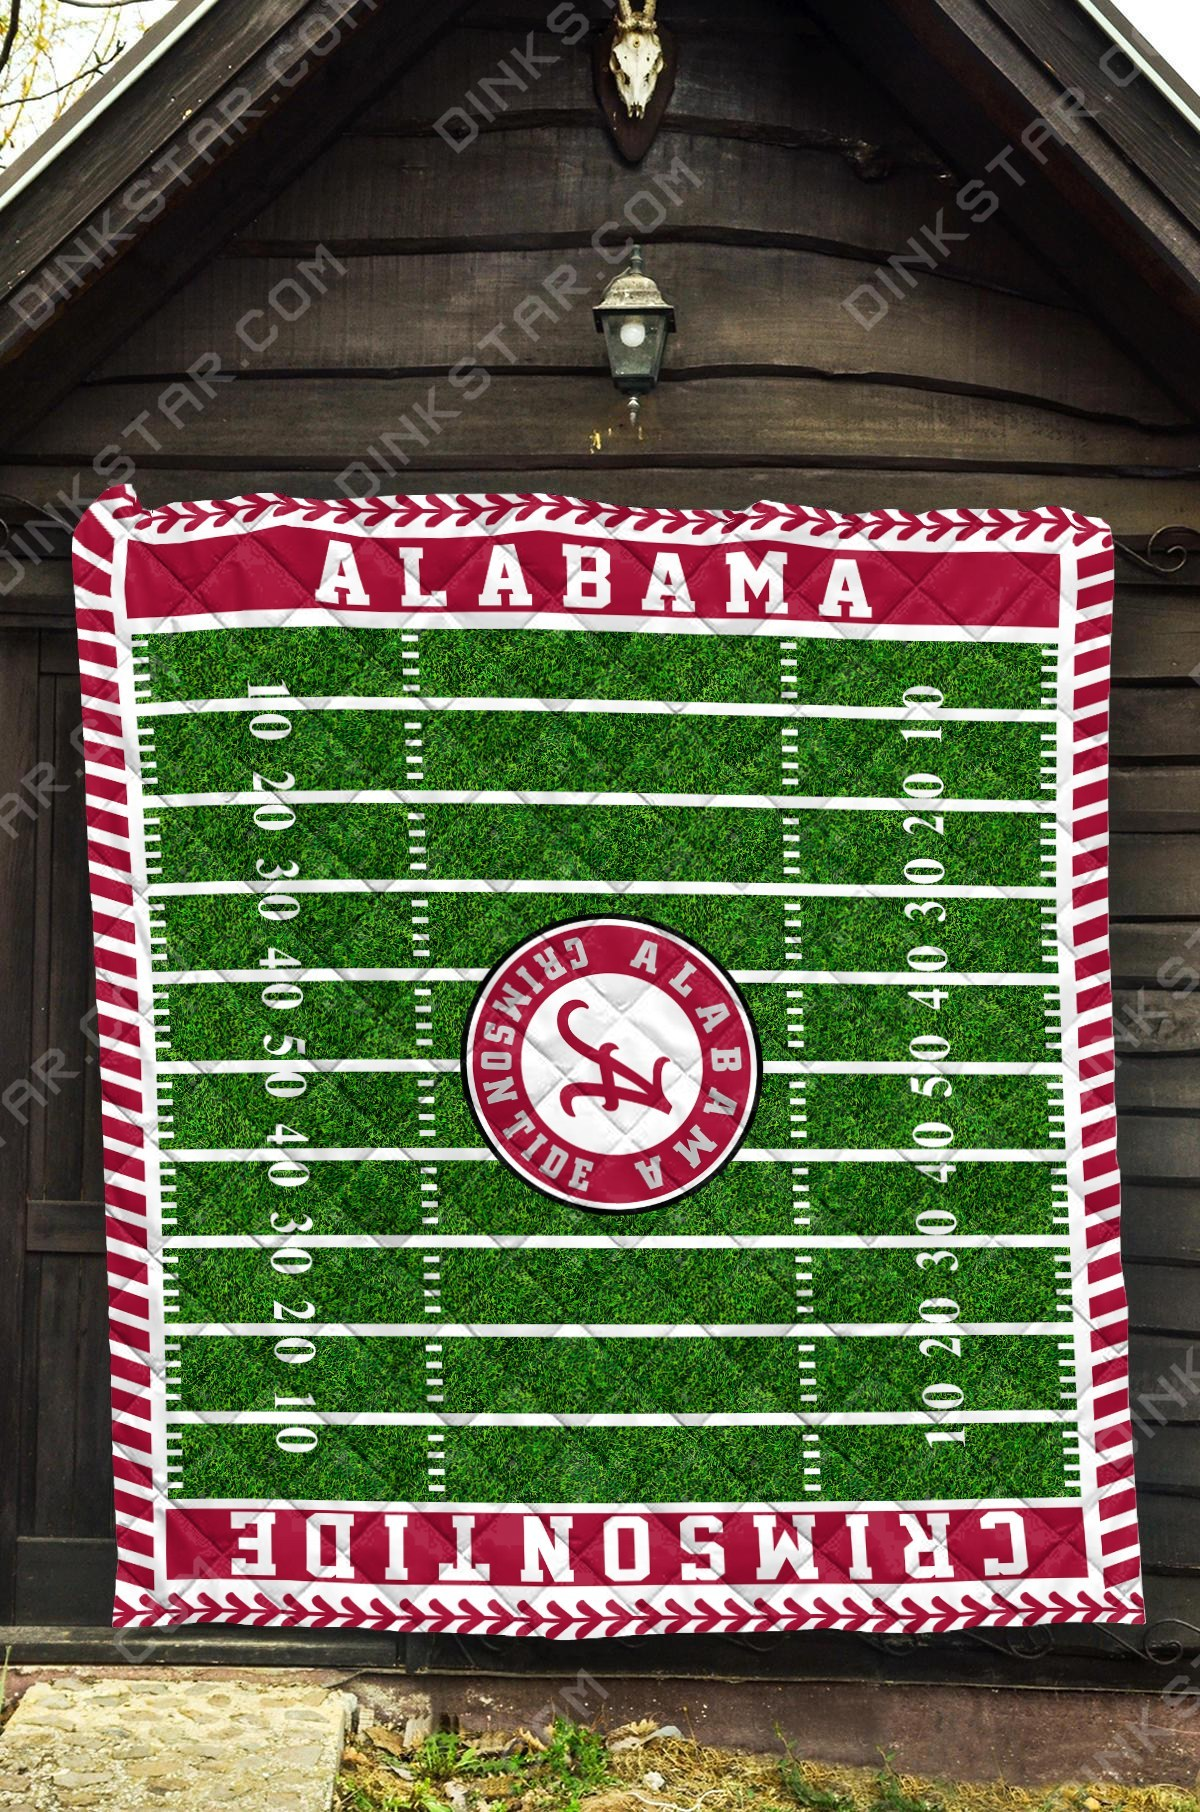 Alabama crimson tide football quilt 1